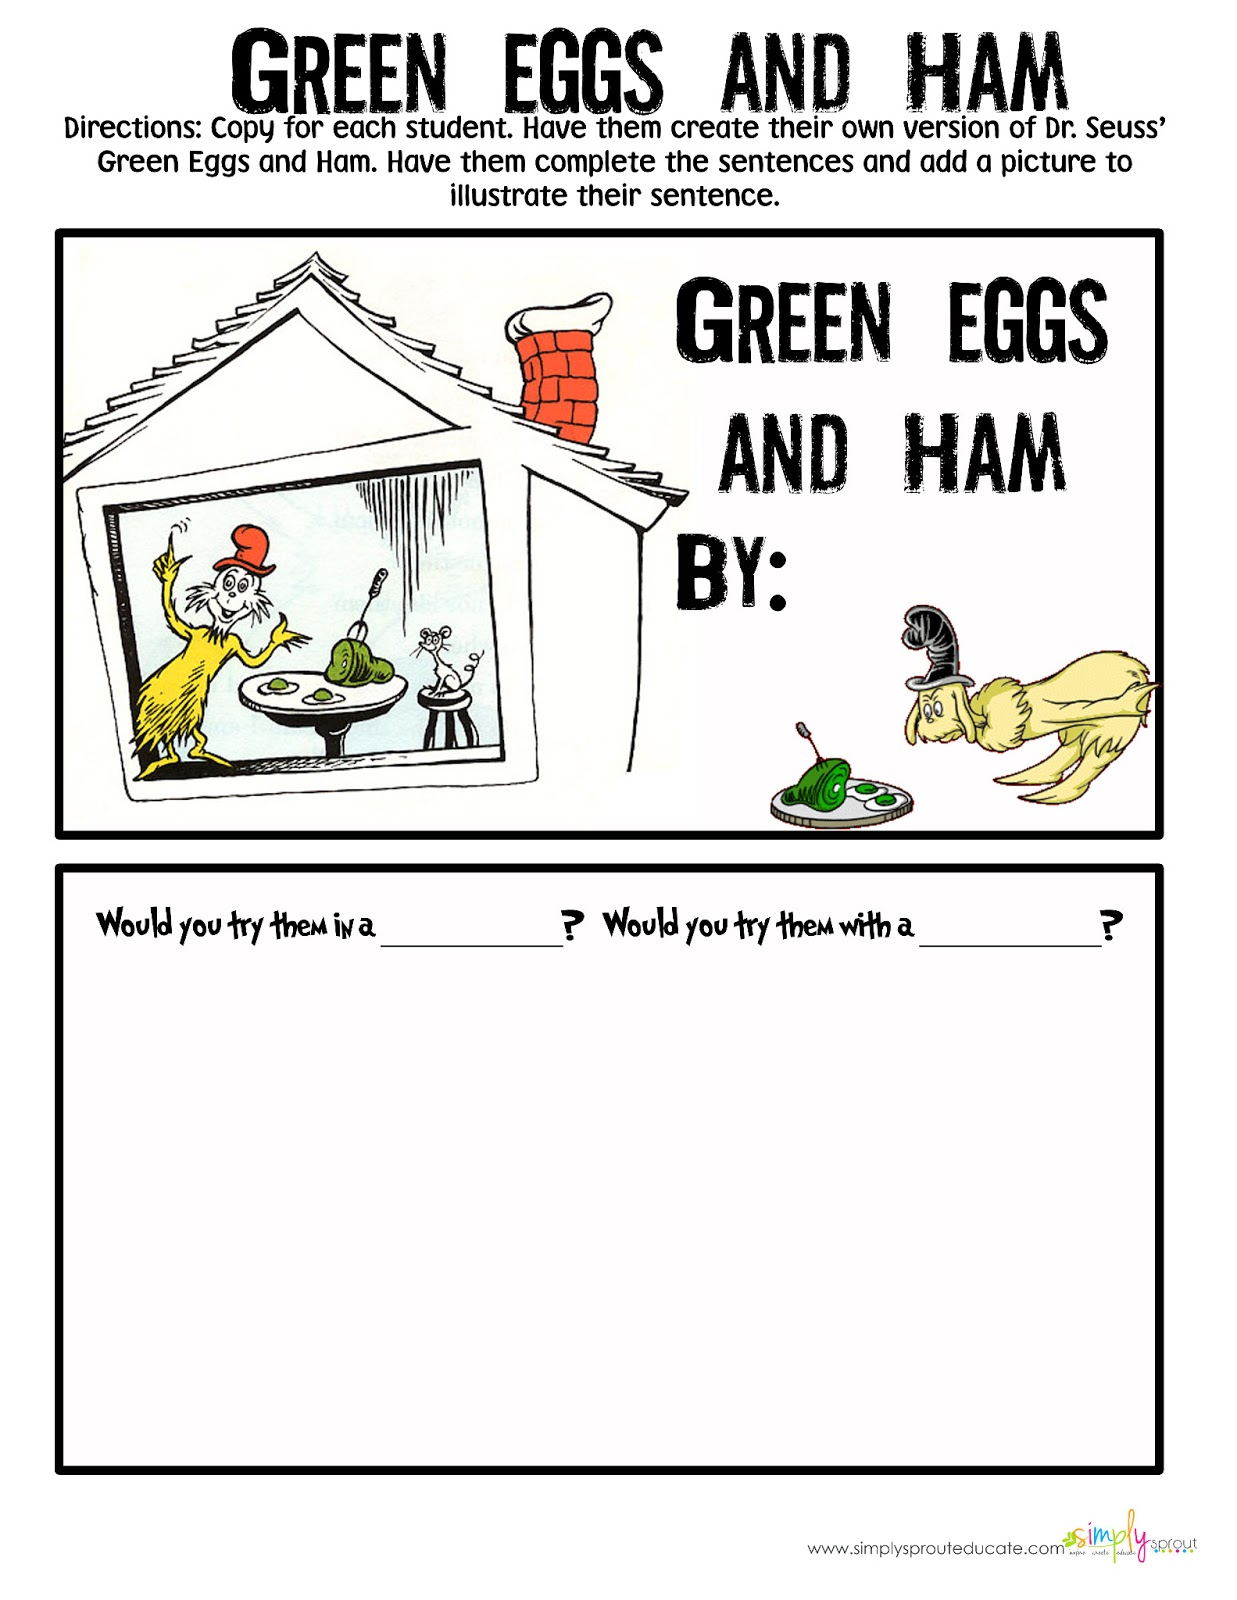 green eggs and ham simply sprout